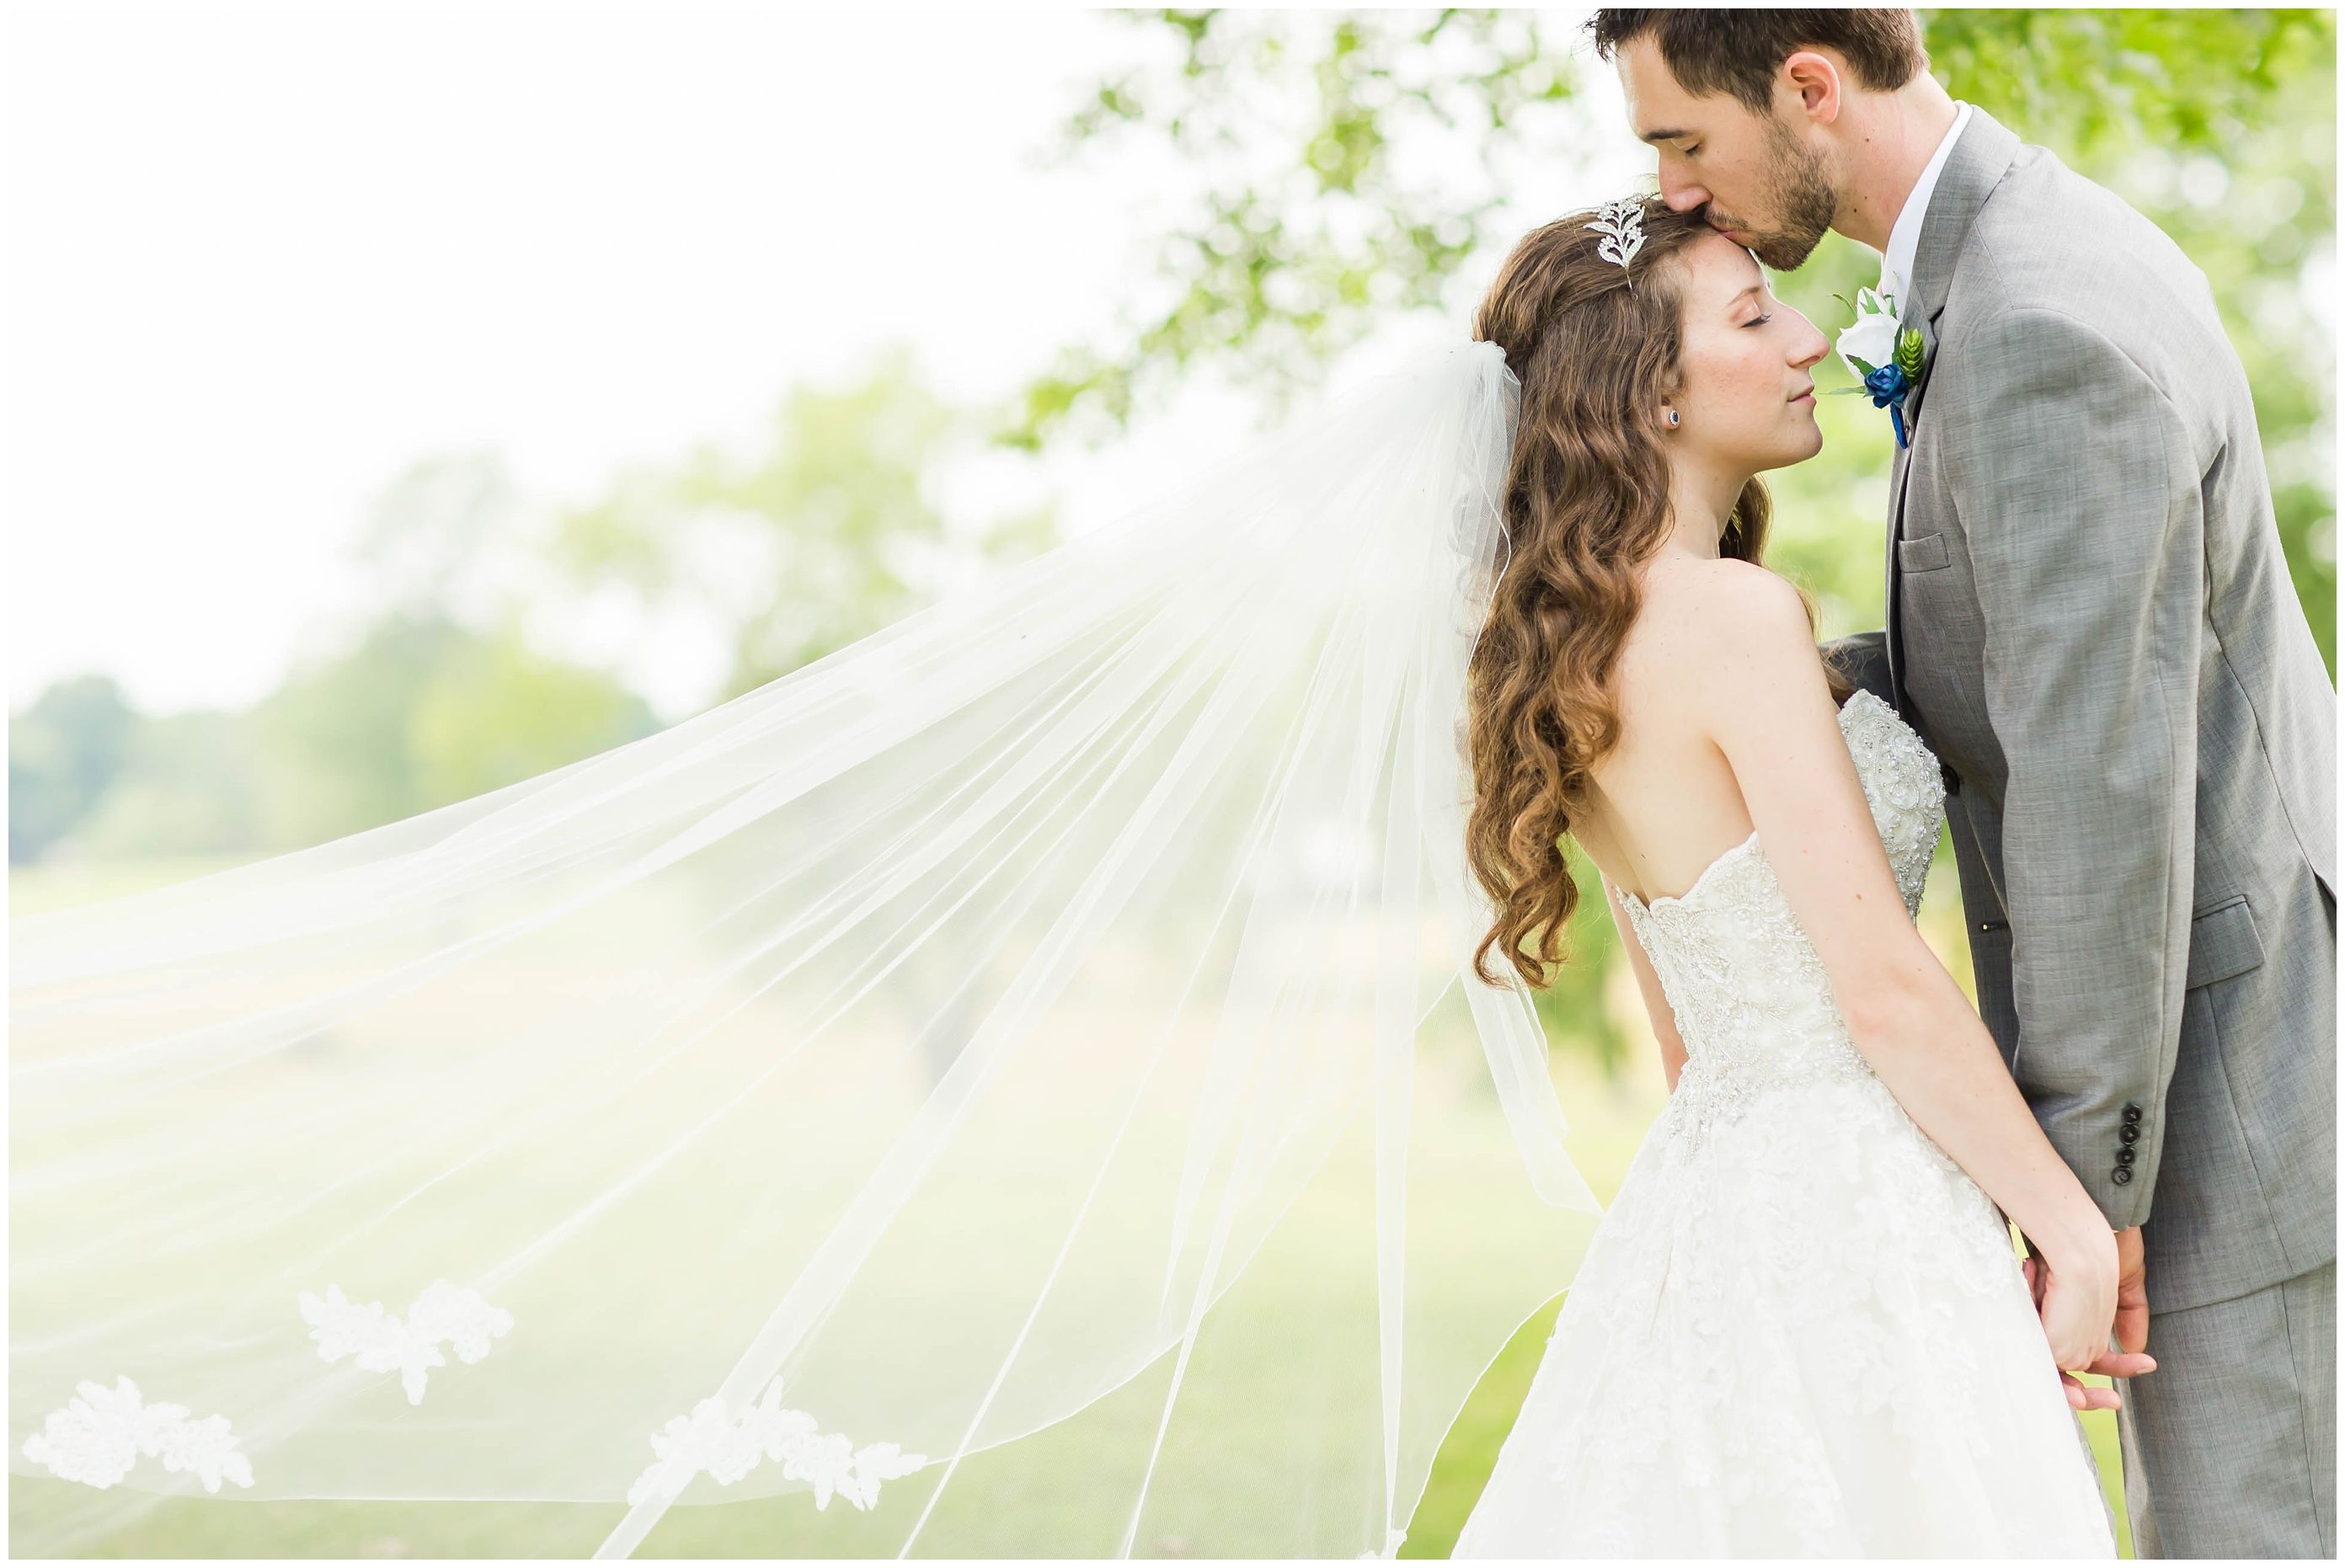 A beautiful simple rustic wedding at Brookside